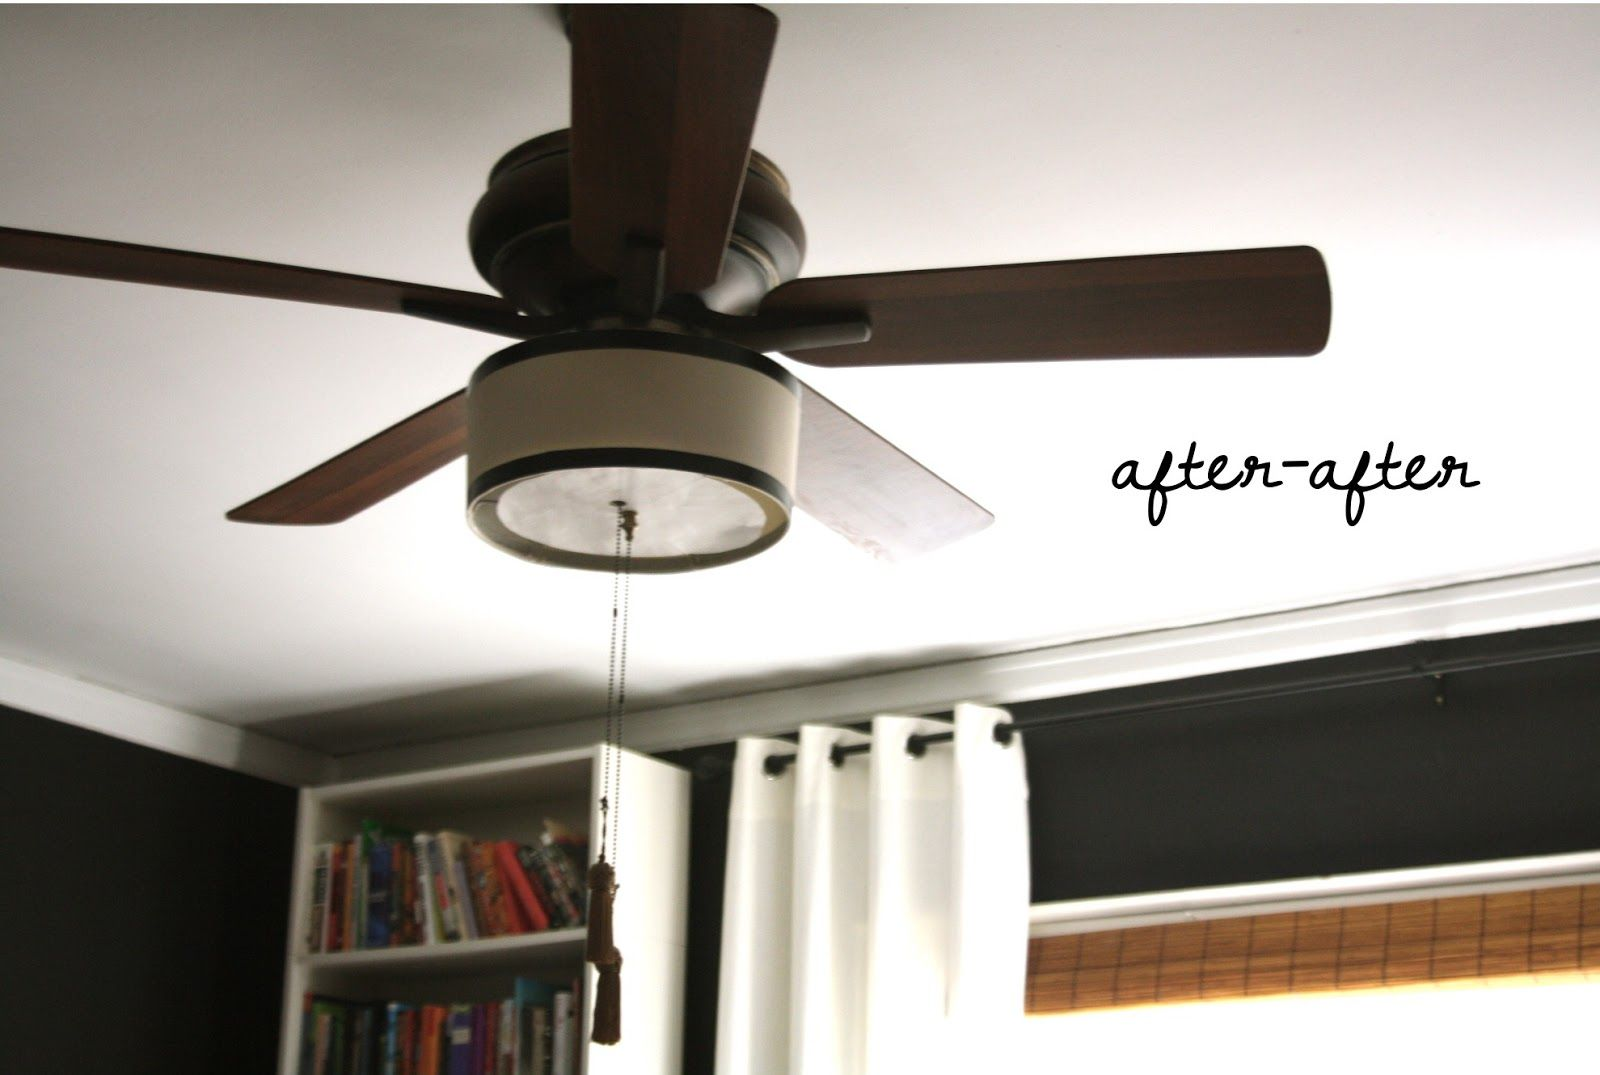 Diy ceiling fan makeover with drum shade diffuser and black trim diy ceiling fan makeover with drum shade diffuser and black trim aloadofball Images